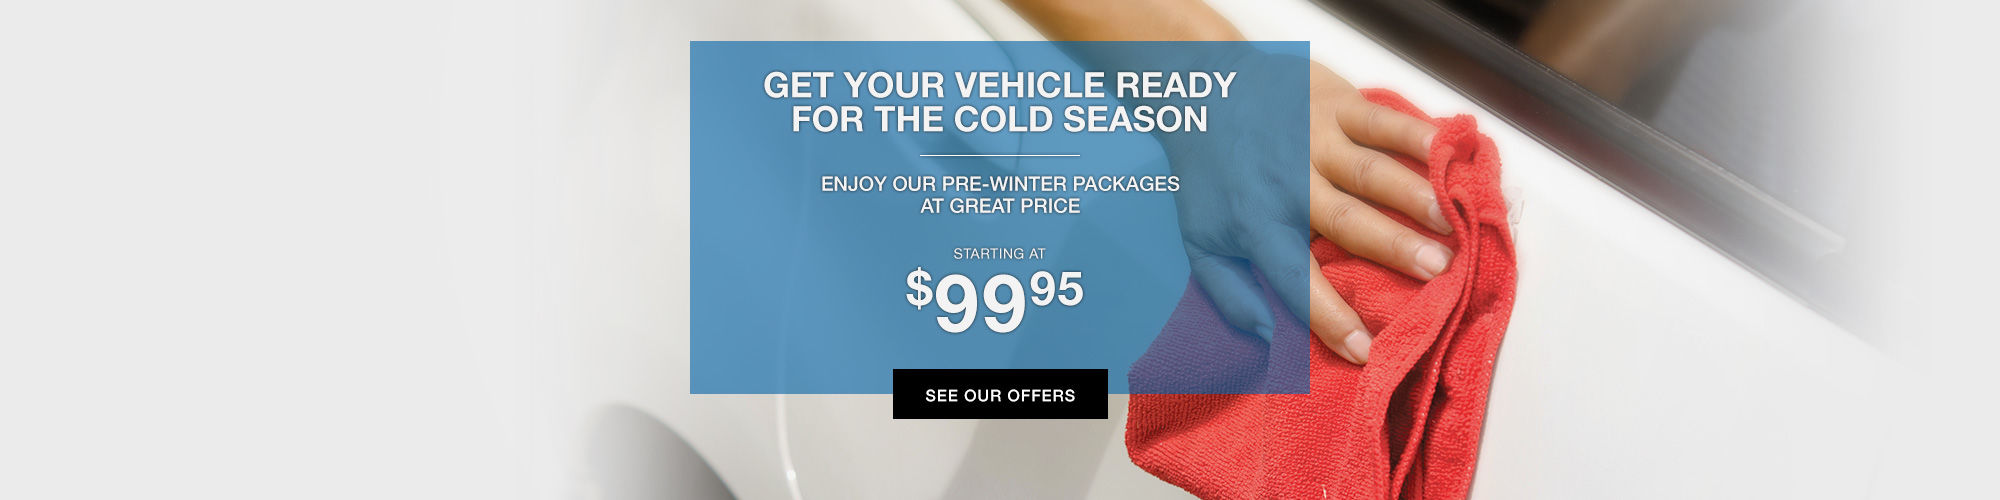 Pre-winter protection package